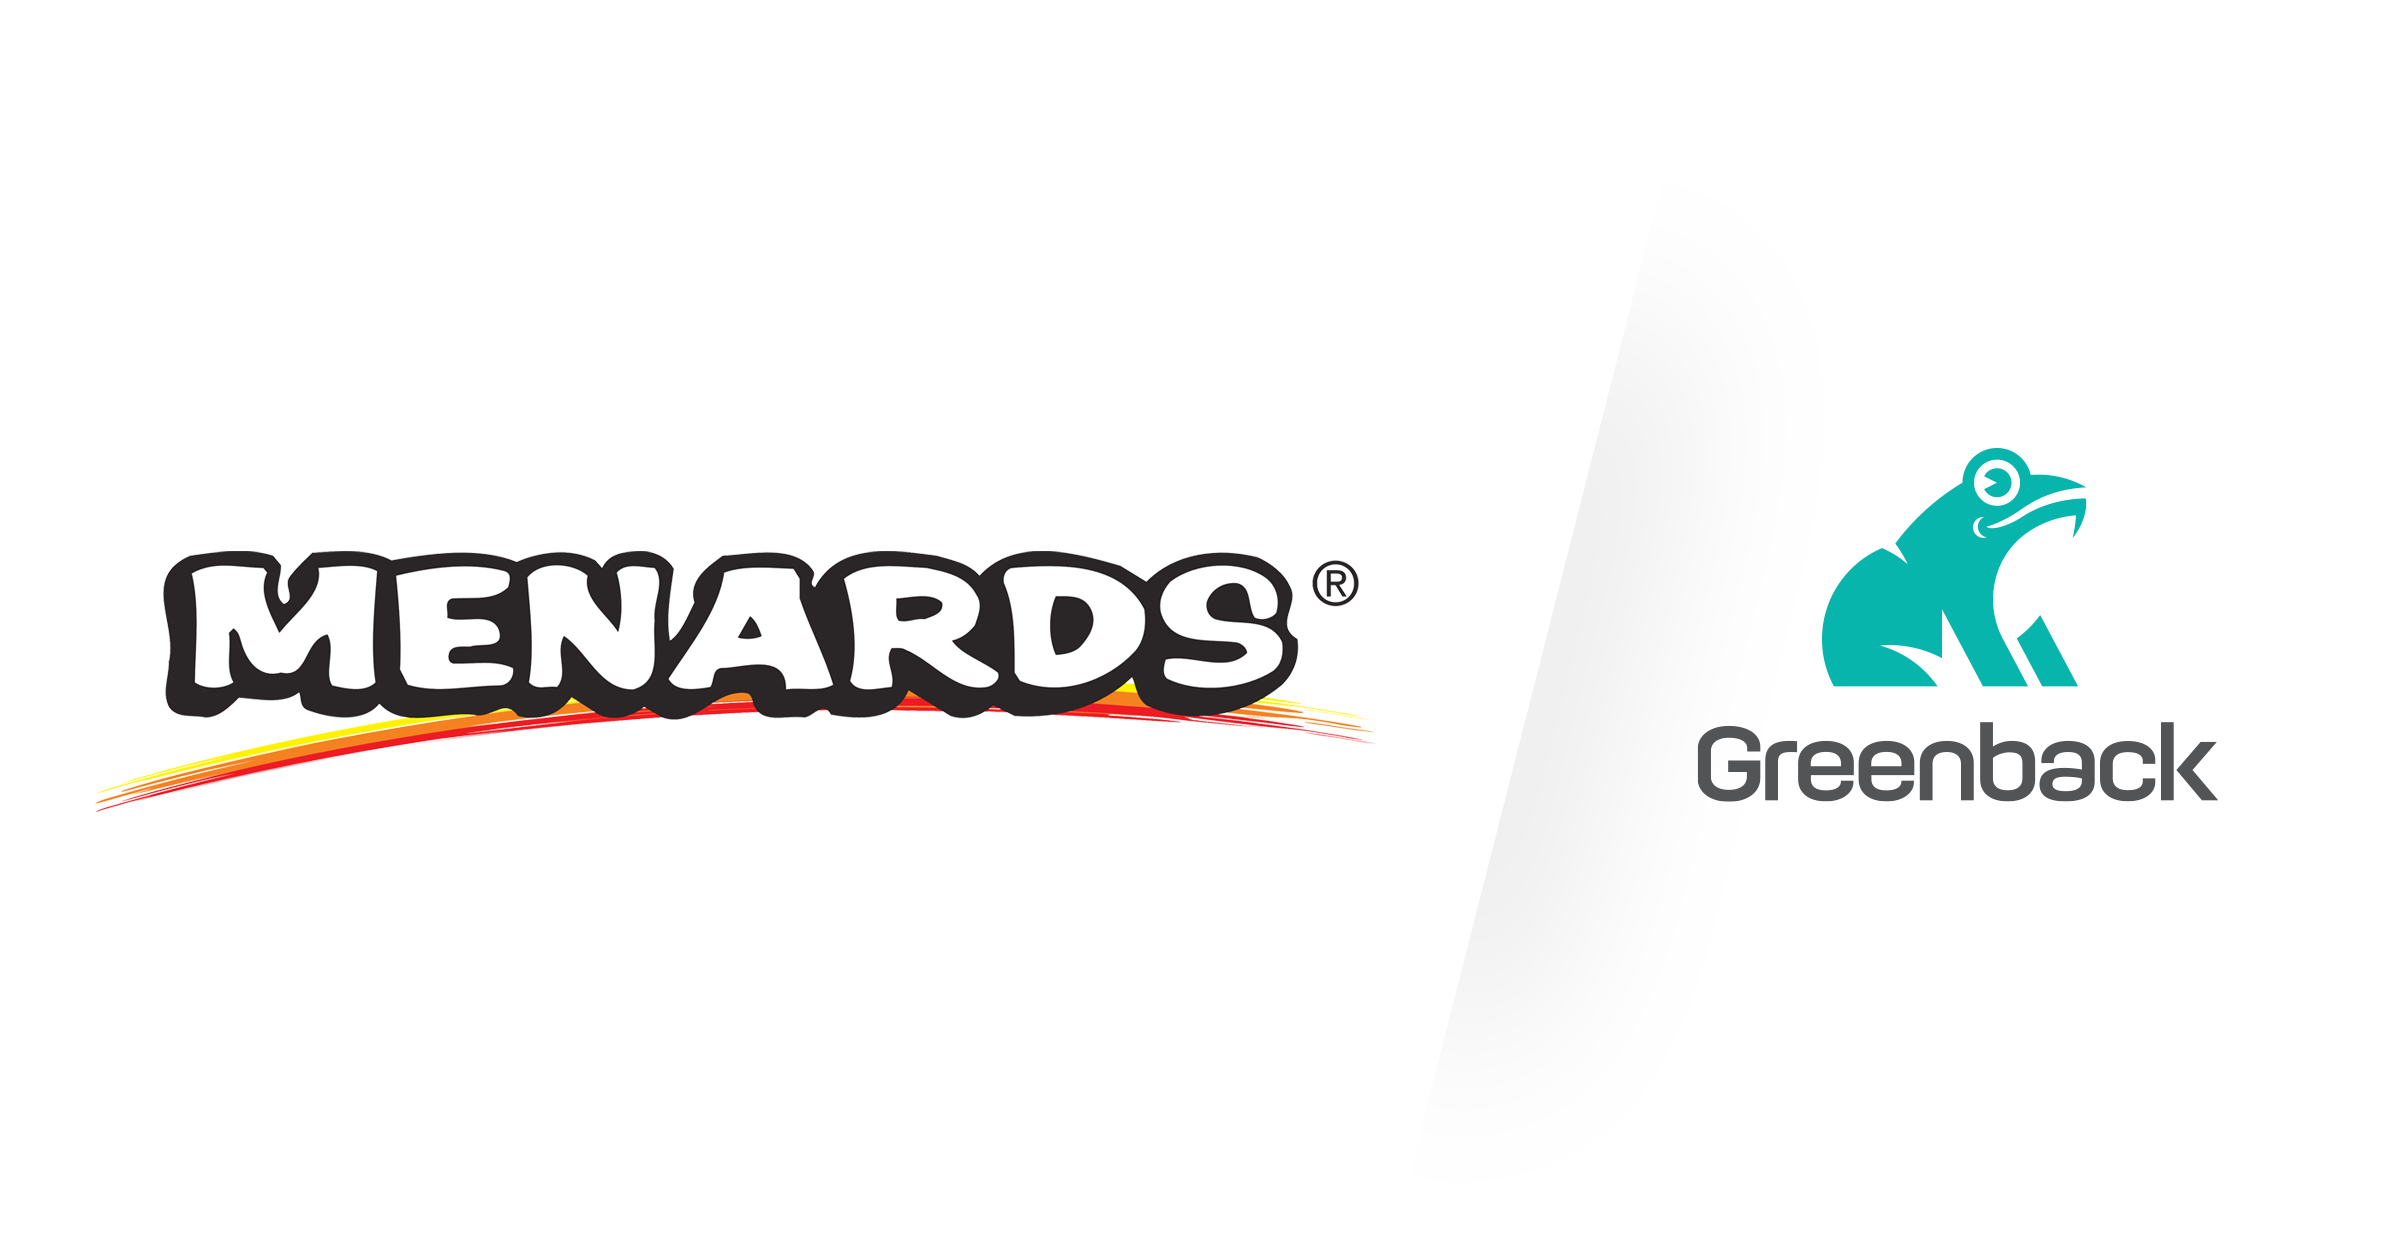 Automate Your Online and In-Store Menards Receipts